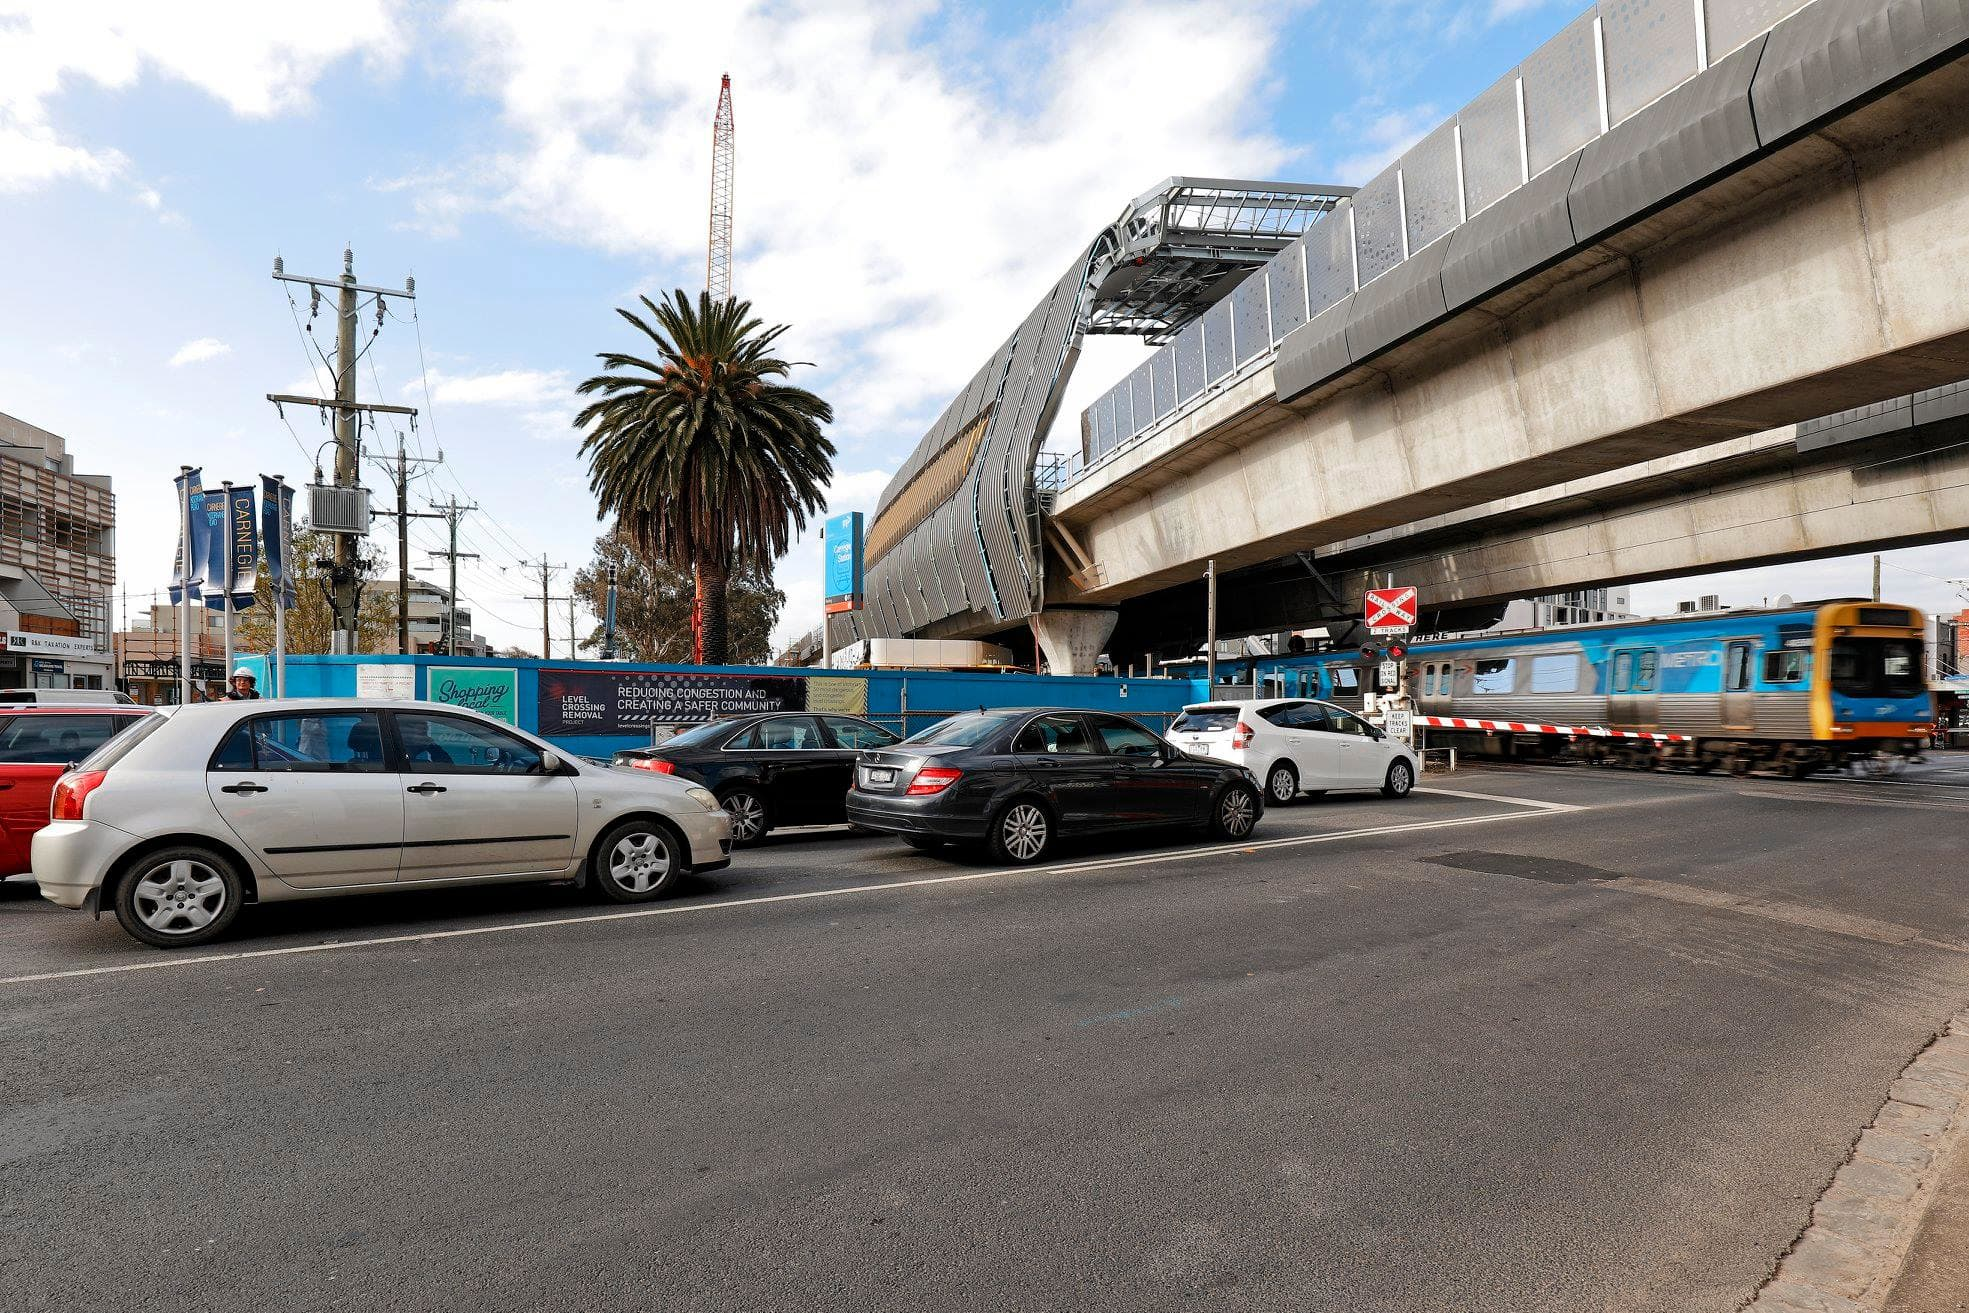 Final Dandenong corridor level crossings to be removed by June 17th